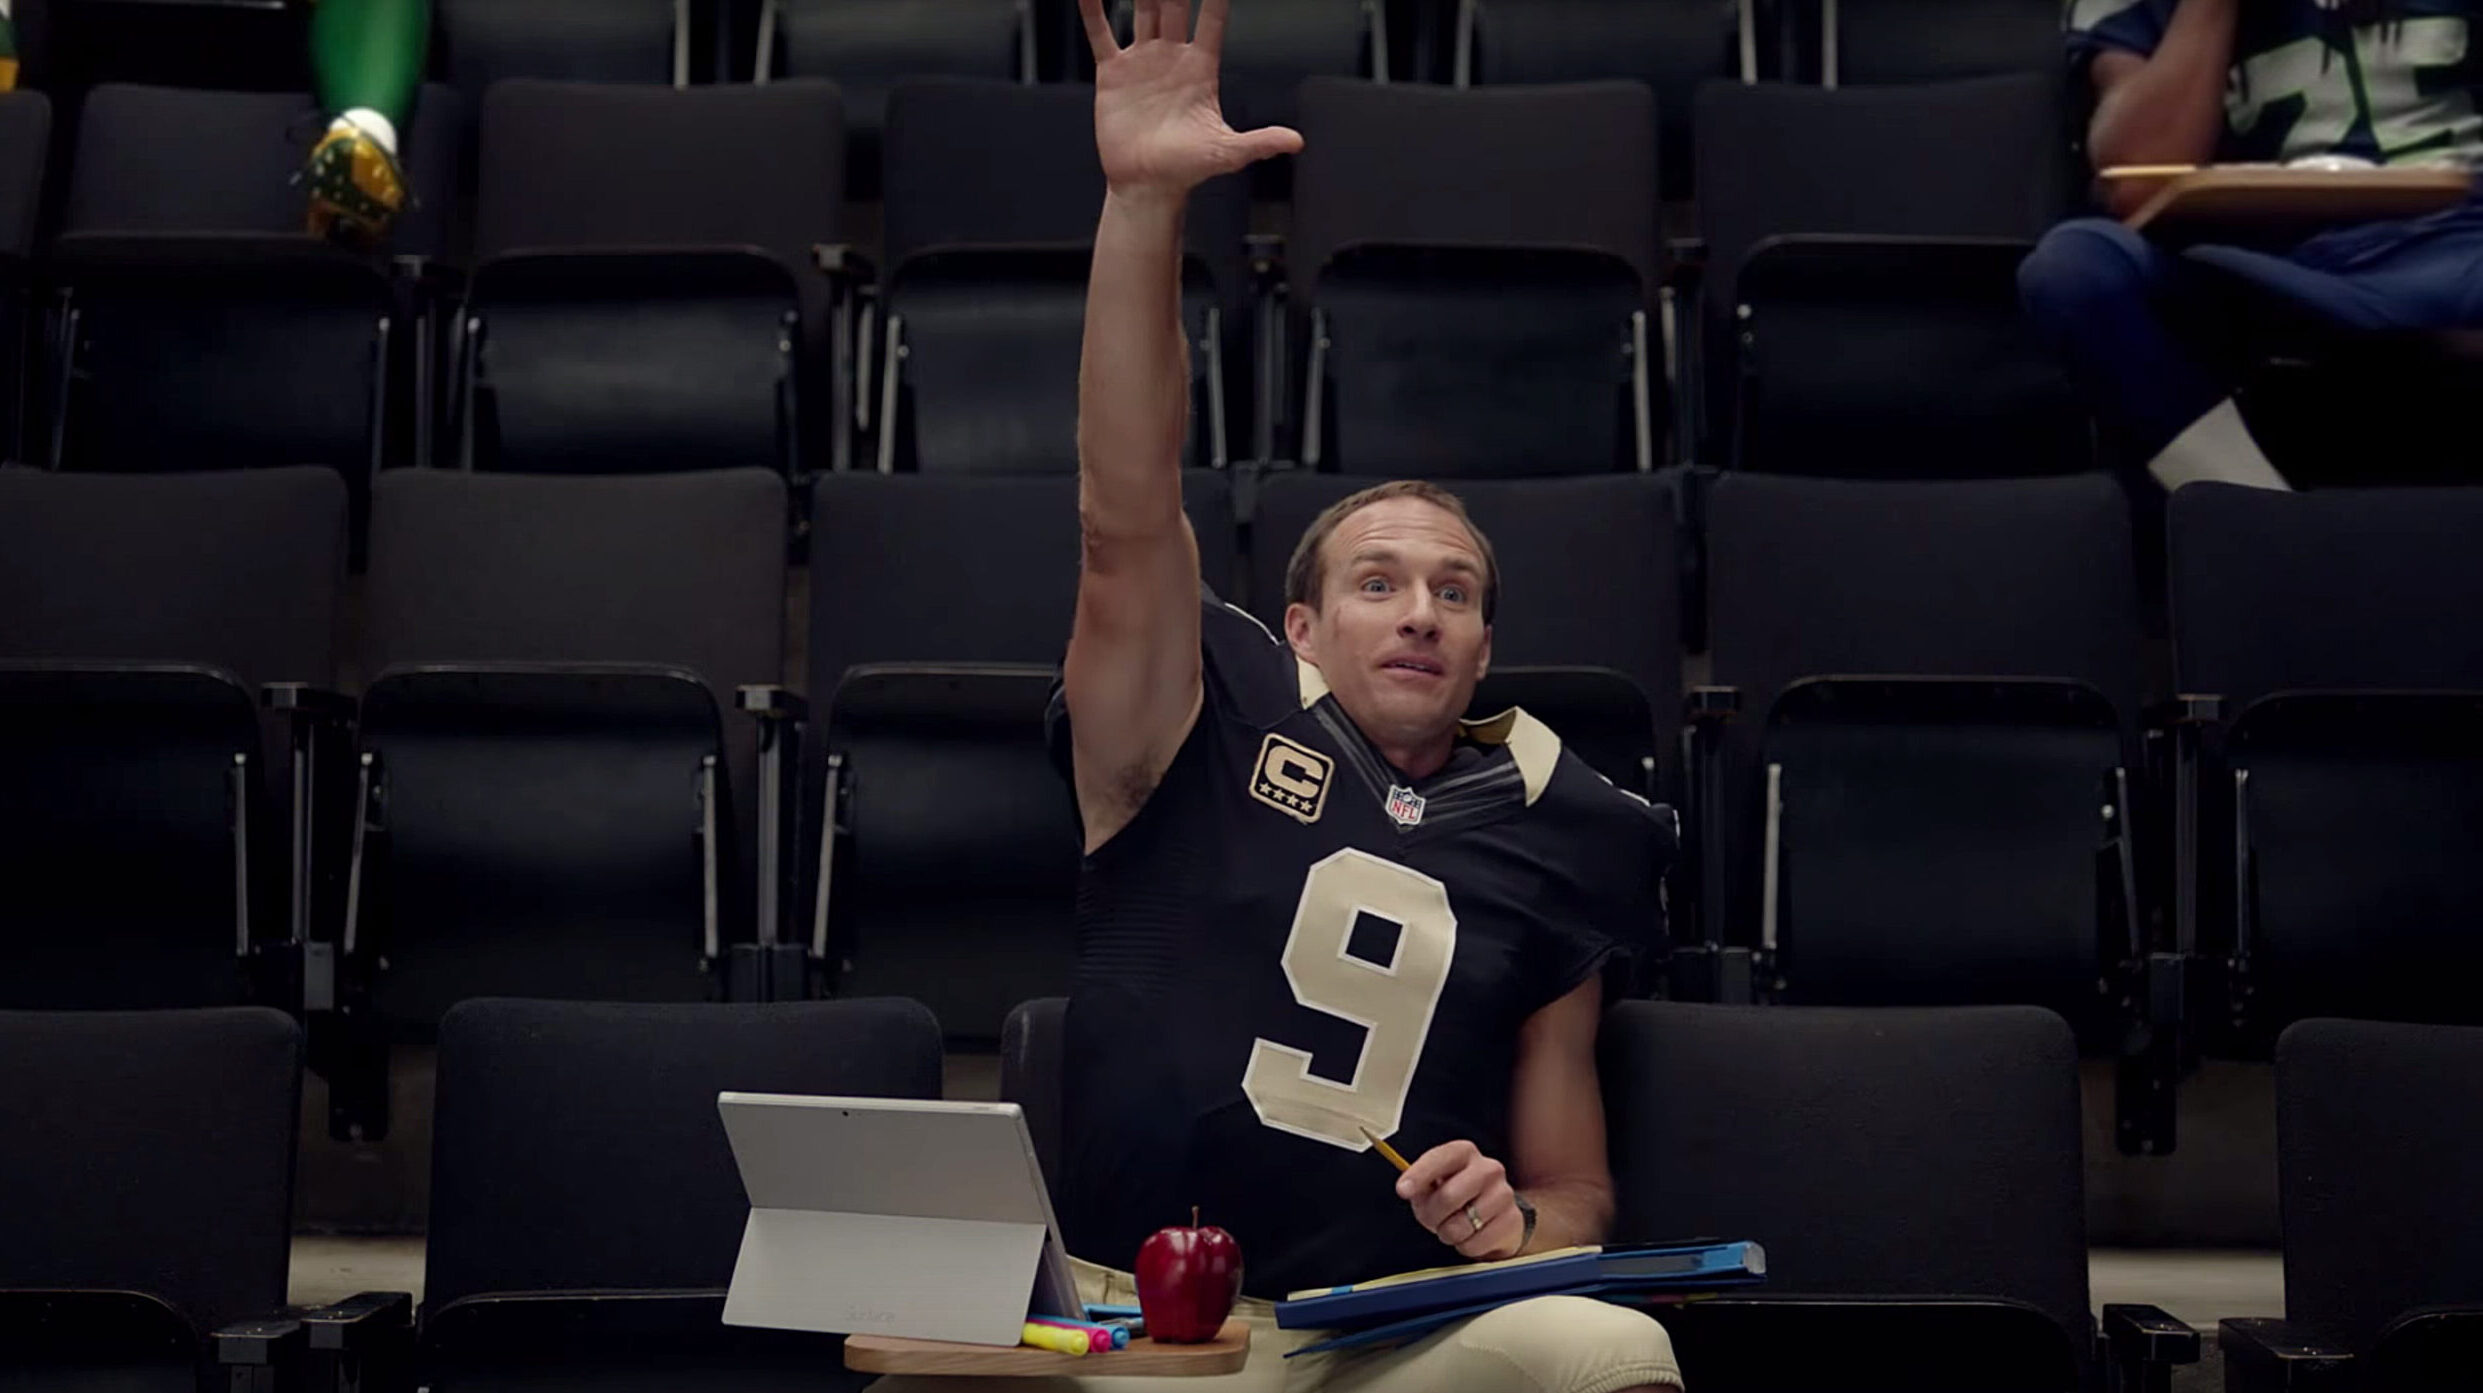 dynasty fantasy football drew brees